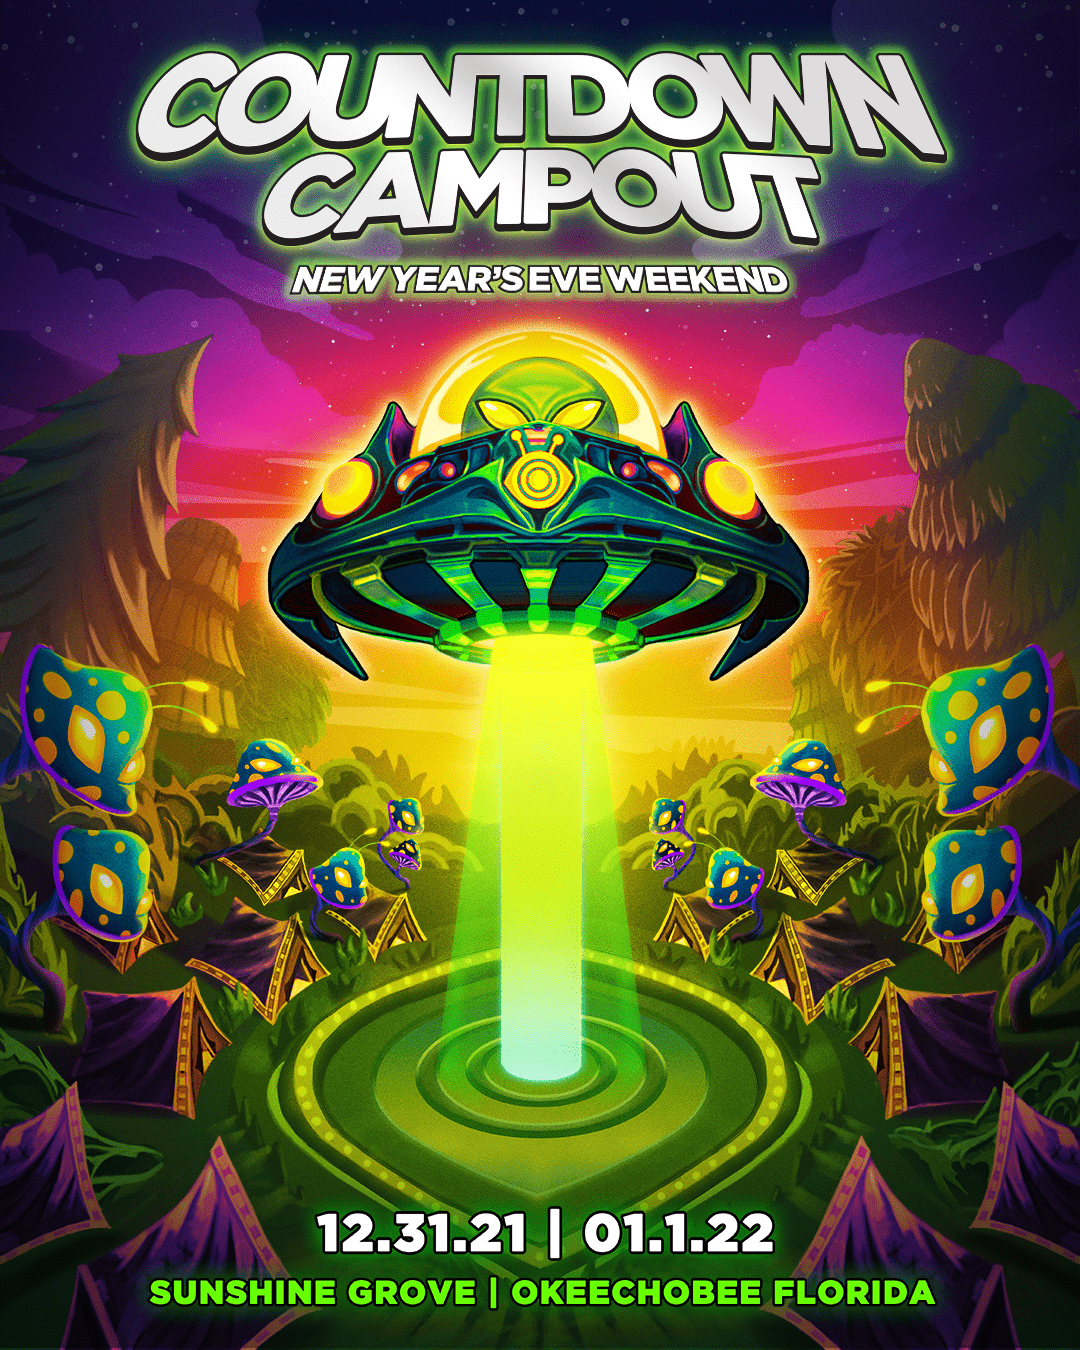 Insomniac Goes Big For Countdown Campout NYE Event in Florida